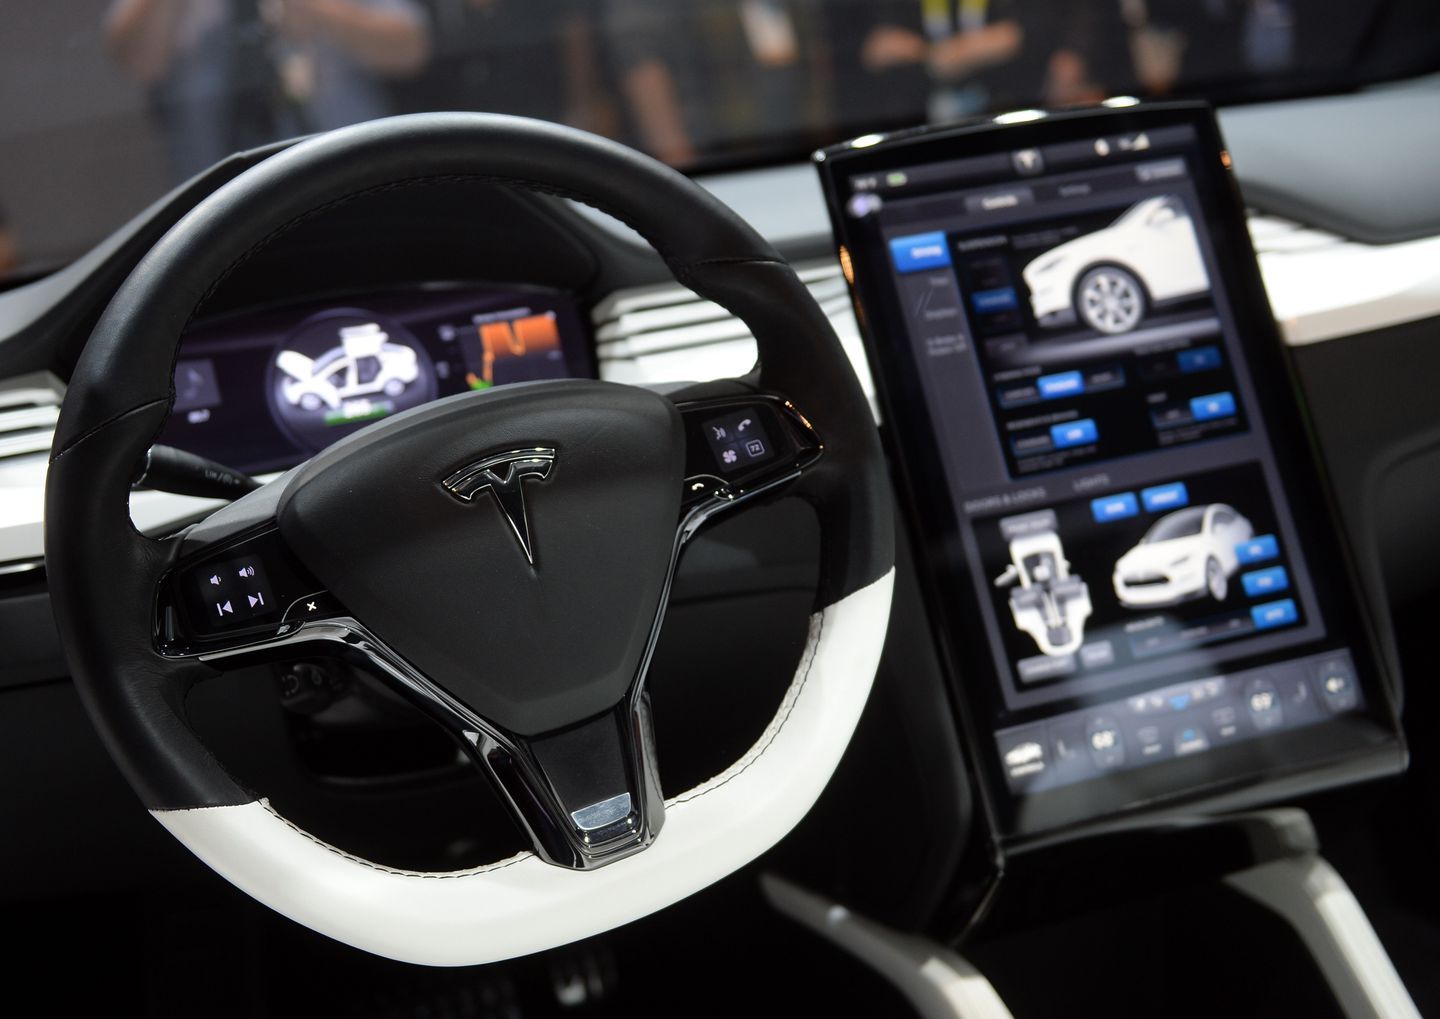 How Can A Software Update Make A Car Faster The Boston Globe